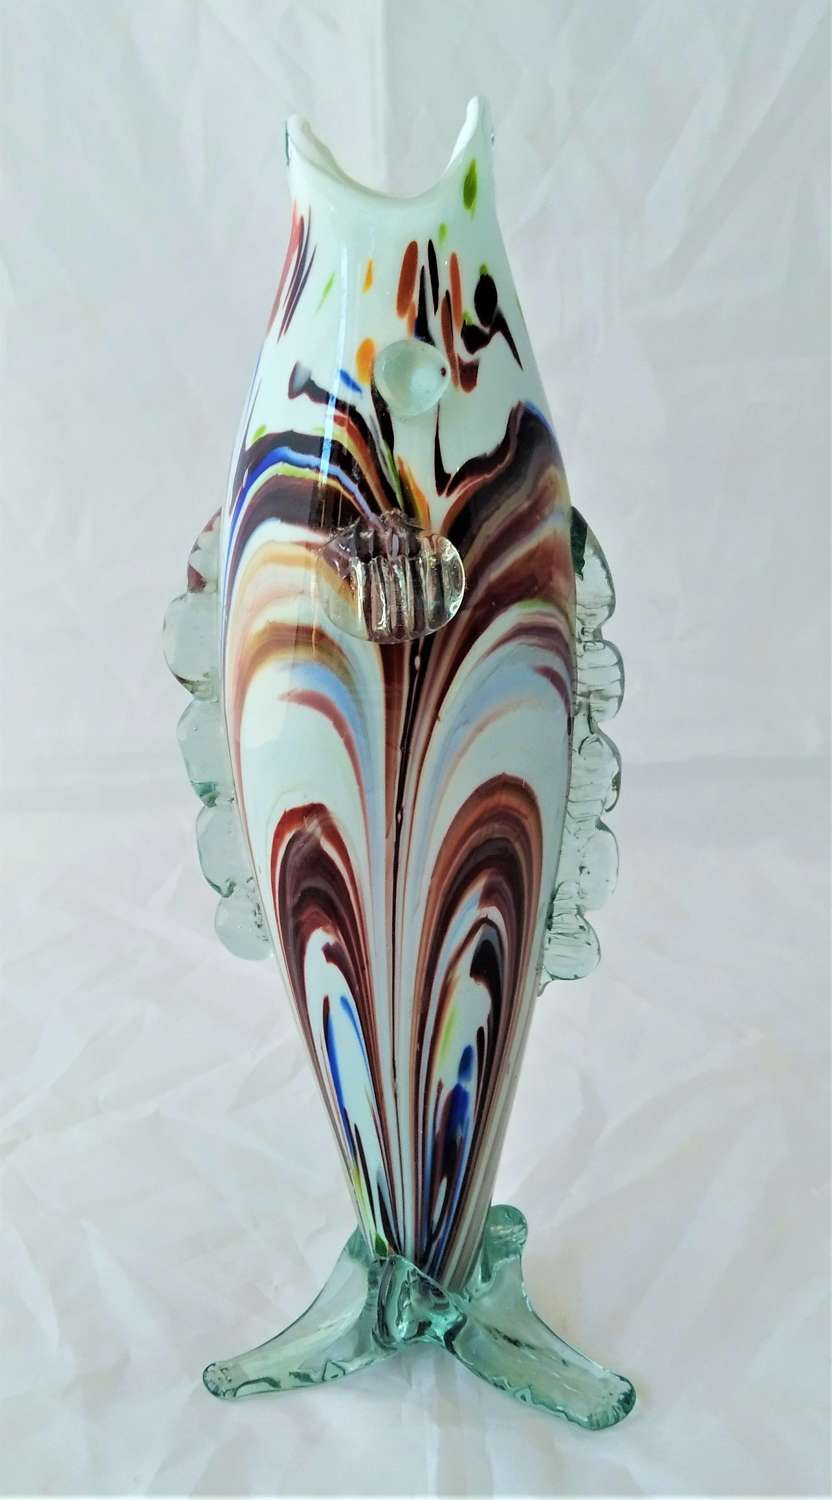 Vintage Murano glass in the form of a fish